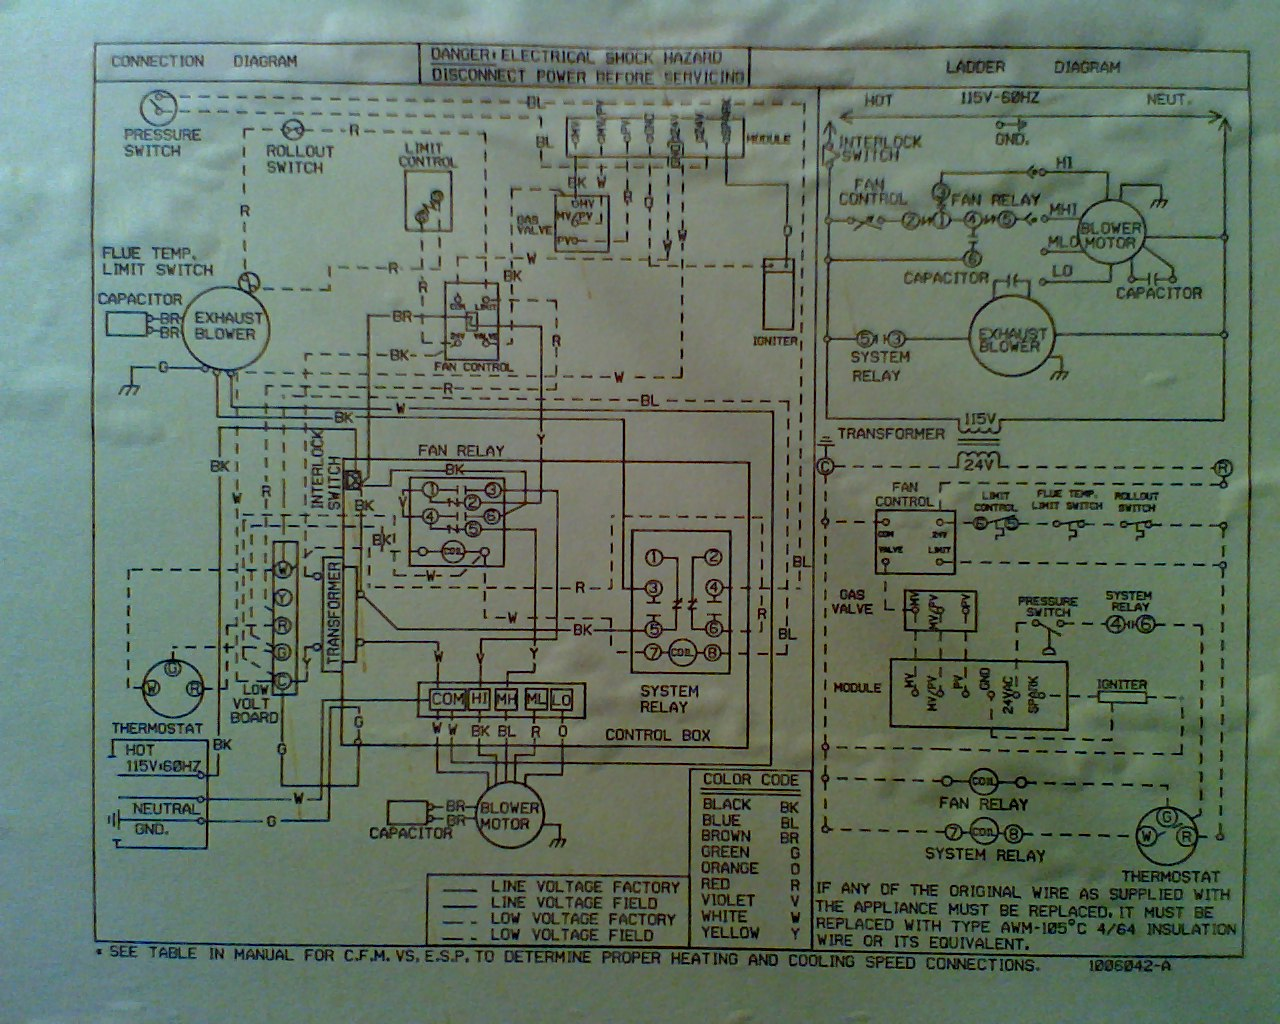 2009 11 20_231603_1120091711a air conditioner y wire grihon com ac, coolers & devices Tempstar 12 Heat Pump Schematic at alyssarenee.co